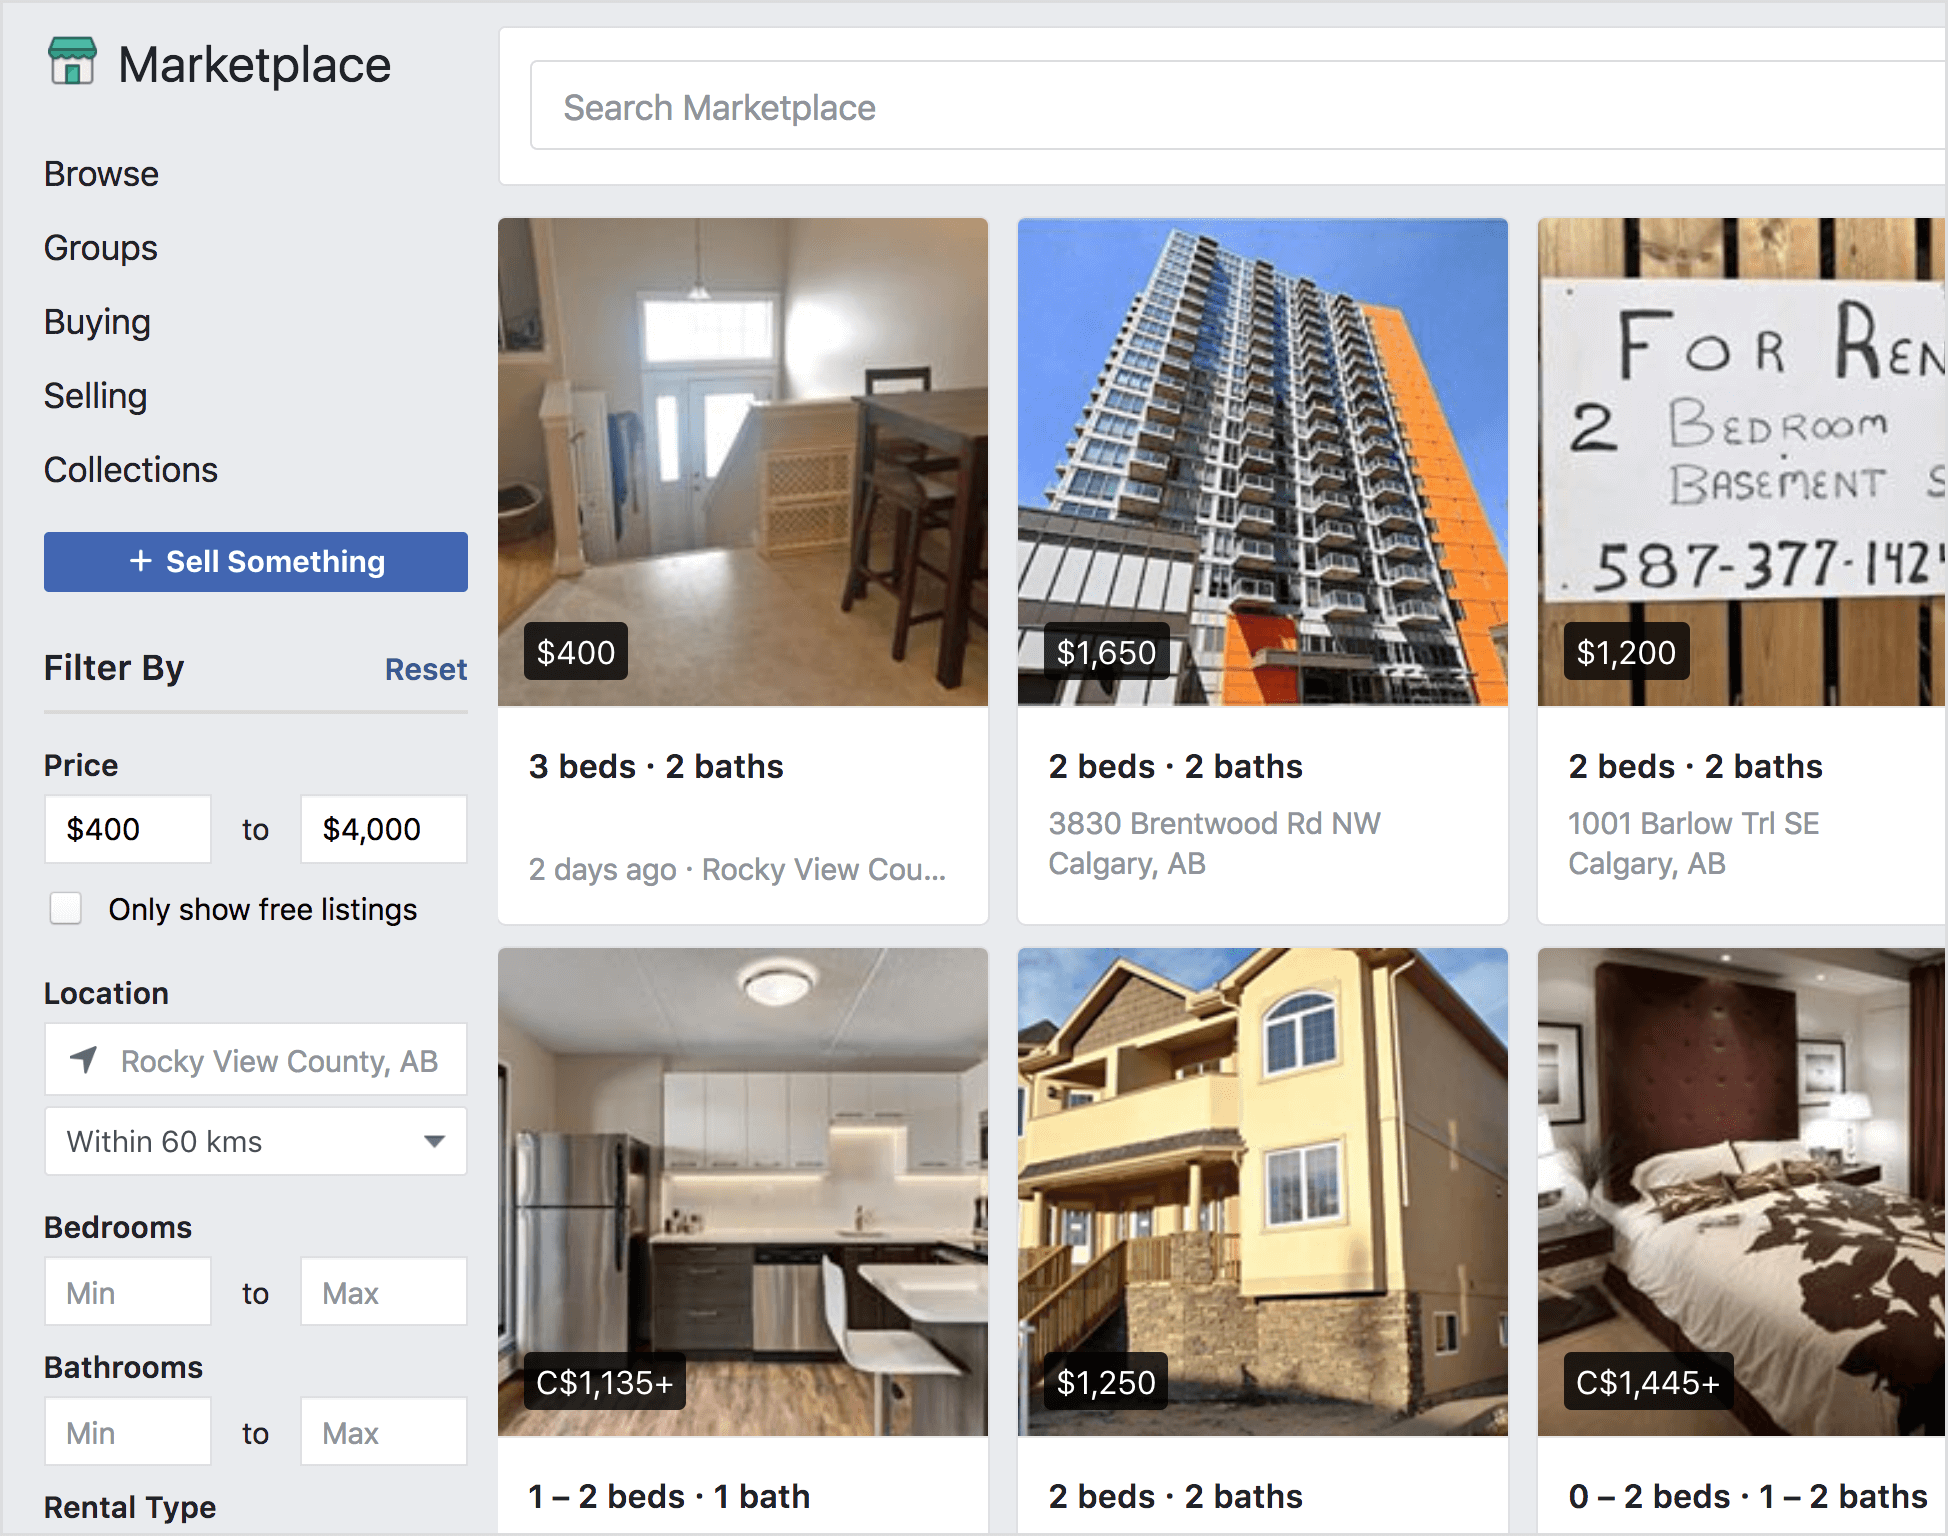 Facebook Marketplace offers rental properties for sale.